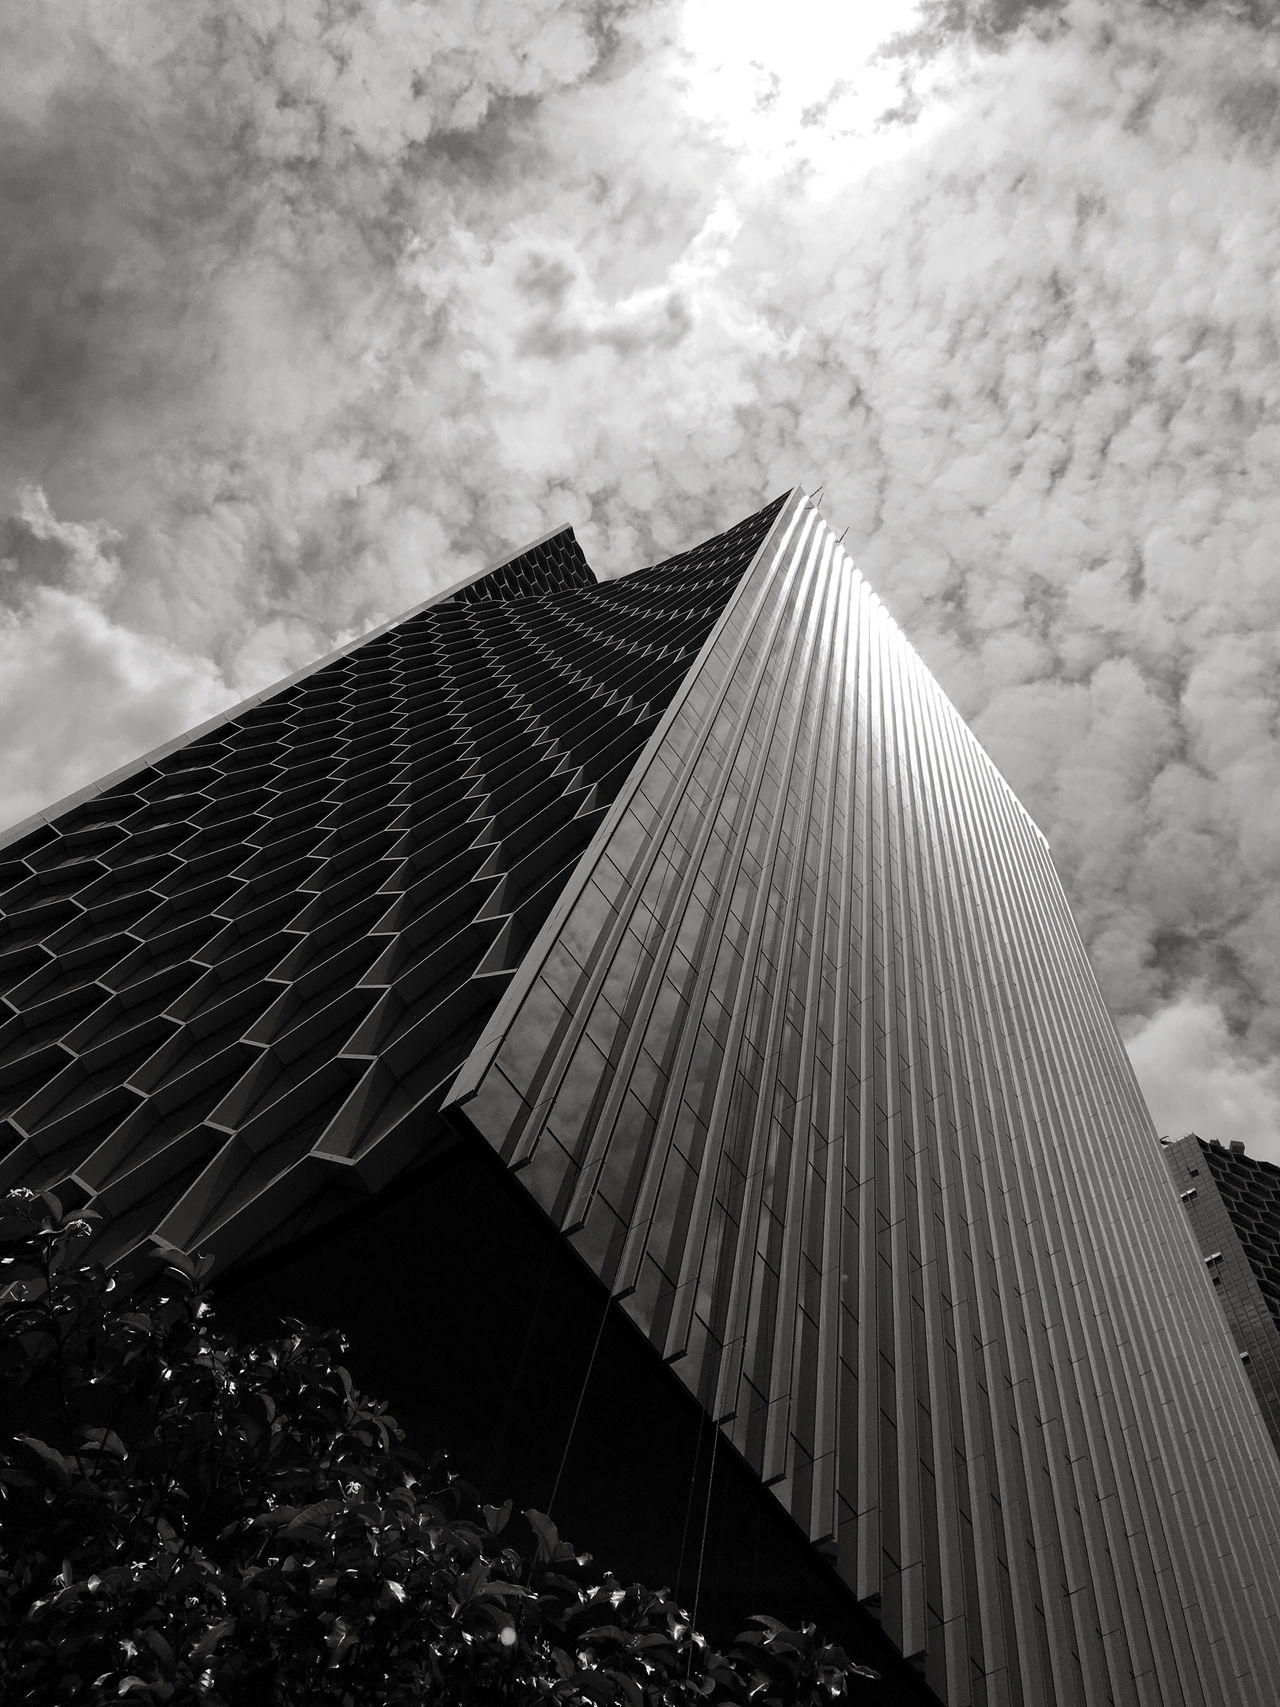 Modern skyscraper in black and white. Architecture Background Backgrounds Black And White Building Building Exterior Buildings Buildings & Sky Built Structure City Cityscape Cloud Clouds And Sky Construction Construction Industry Construction Site Day Low Angle View Modern No People Outdoors Pattern Reflection Sky Skyscraper